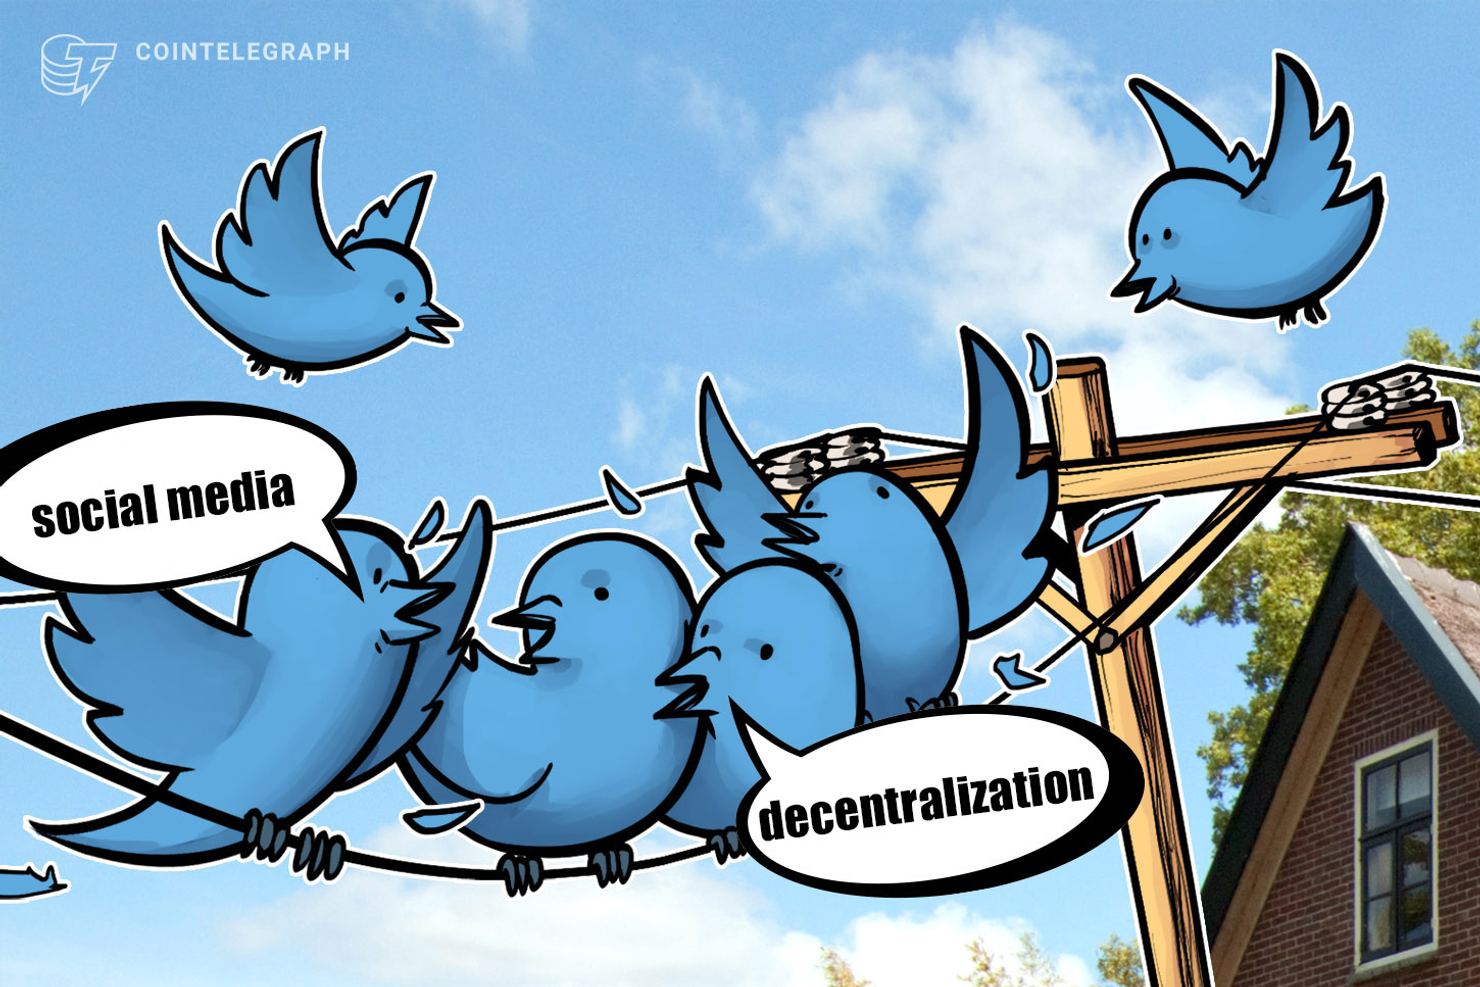 Jack Dorsey: Twitter Developing Decentralized Standard for Social Media